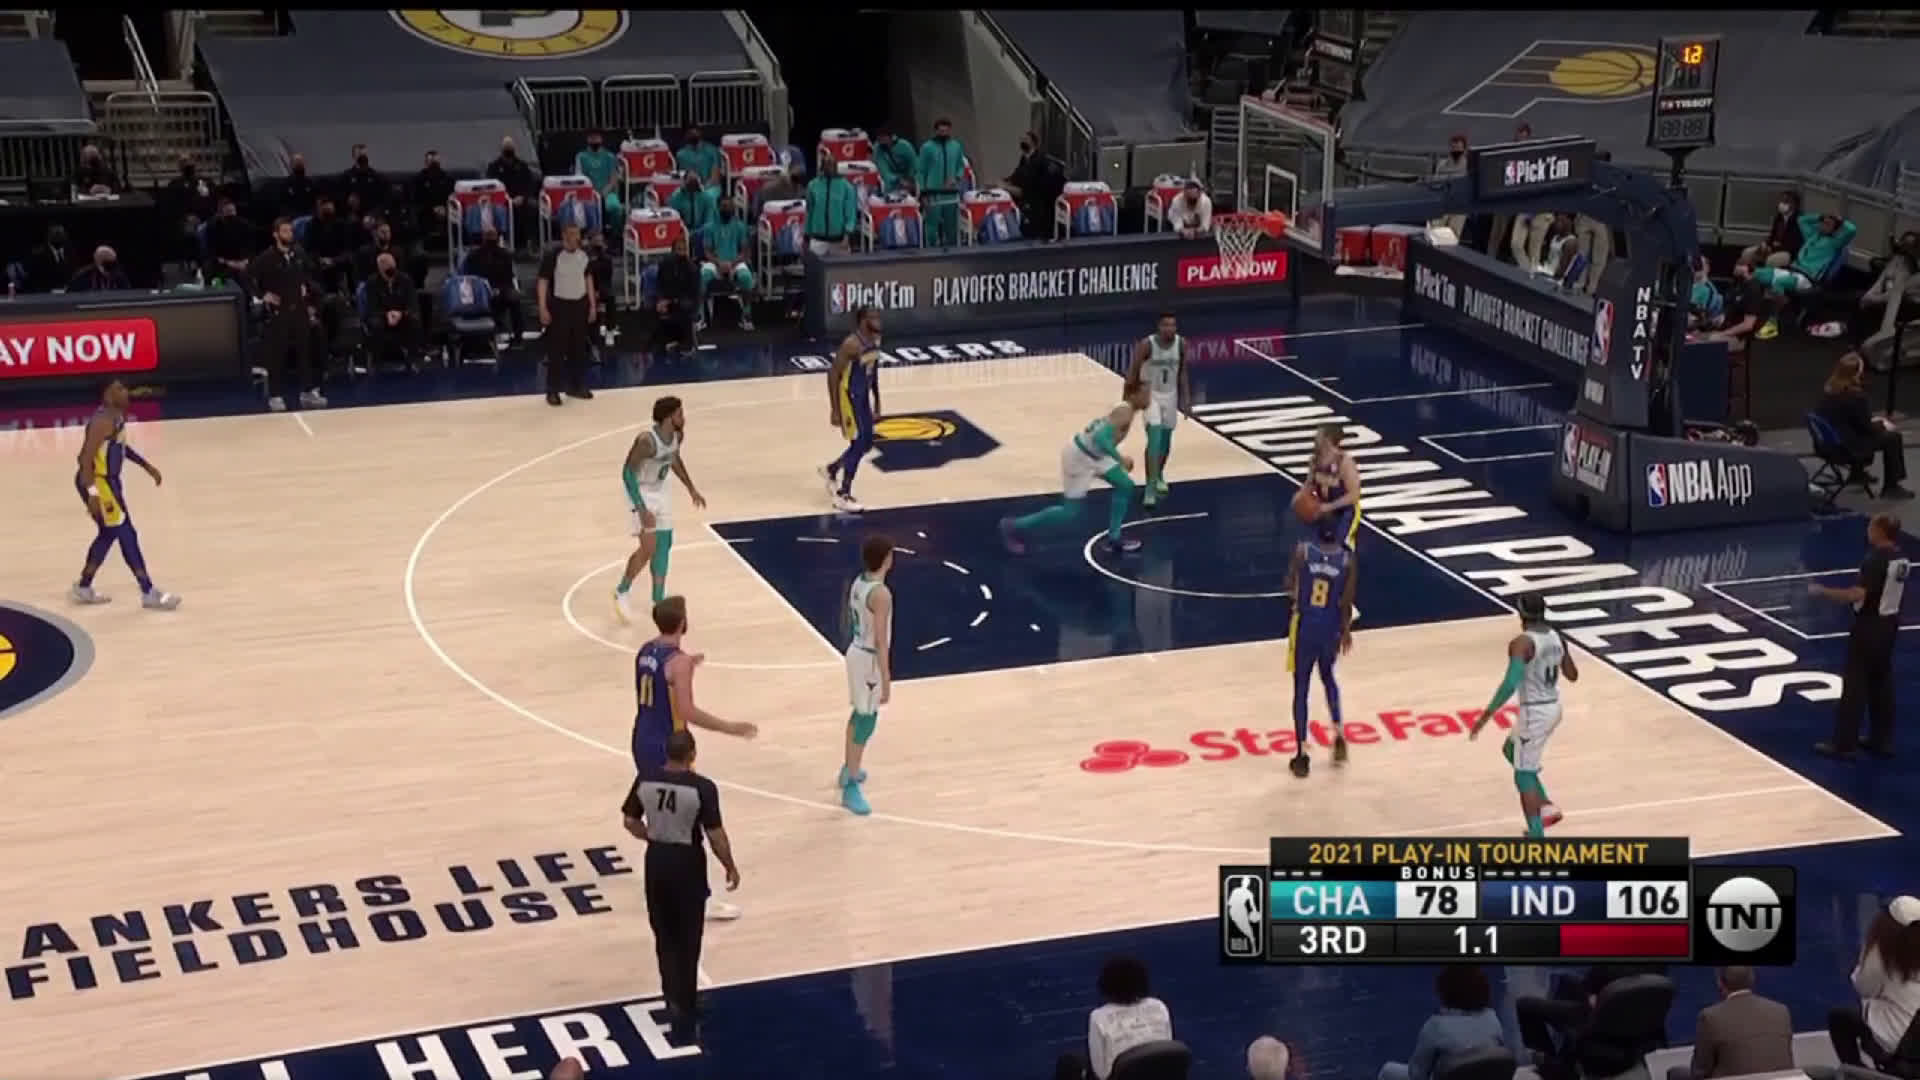 [Highlight] Hornets forgets about TJ Mcconnell as he snakes in for an open shot to beat the 3rd quarter buzzer.